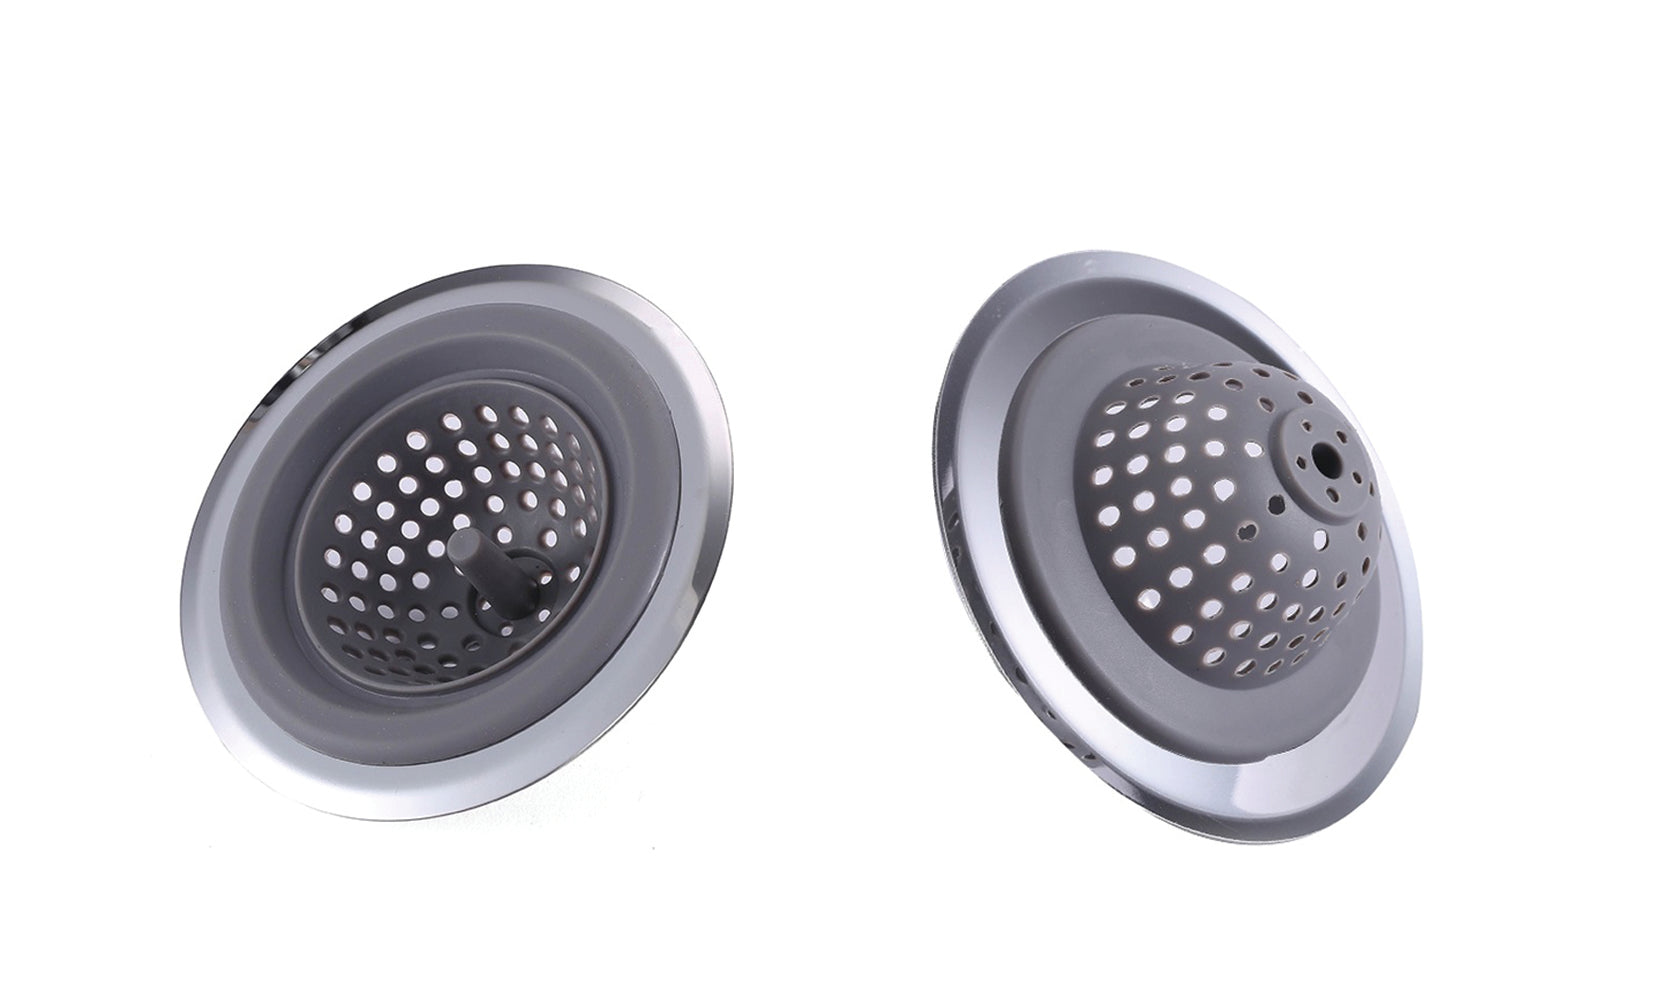 2 in 1 Clog-Free Multi-Purpose Silicone Kitchen Sink Strainer and Stopper (1 or 2-Pack)